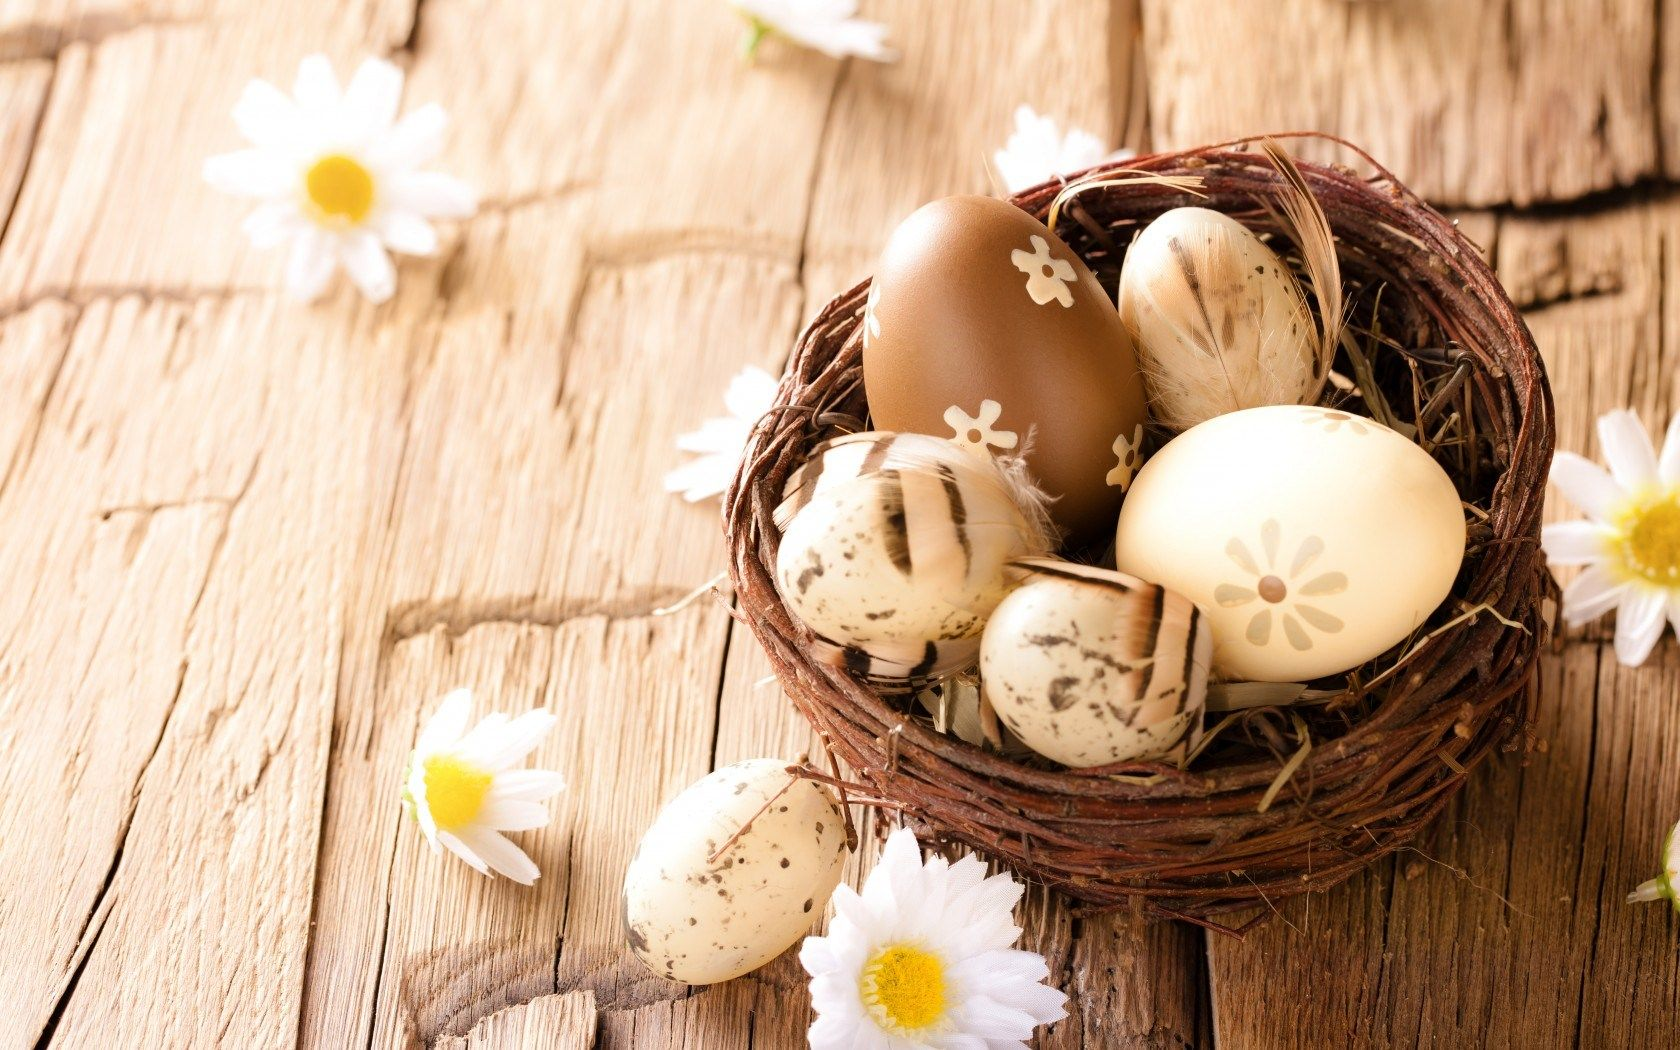 Easter Eggs Daisies Flowers Hd Wallpaper Freehdwall Com Free Hd Wallpapers For Your Desktop Easter Photography Easter Sunday Happy Easter Sunday